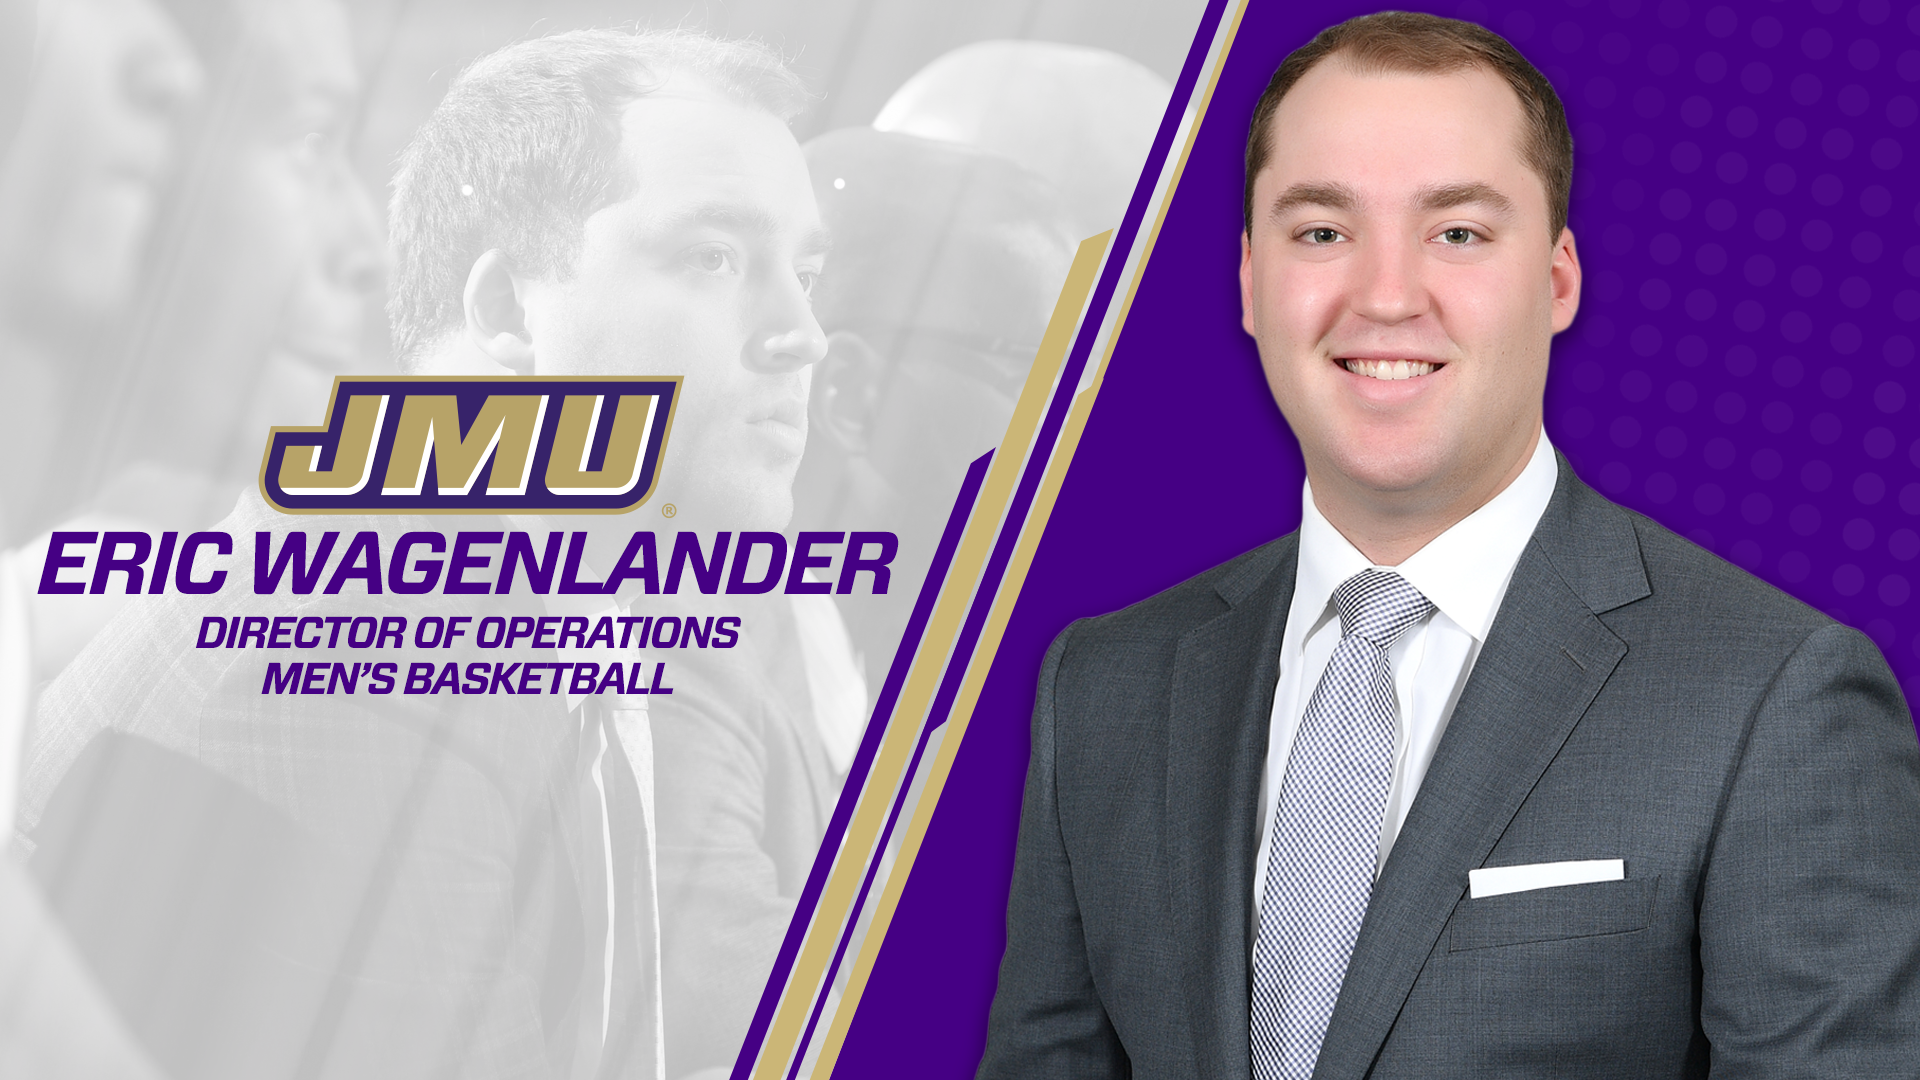 Men's Basketball: Wagenlander Promoted to Director of Operations